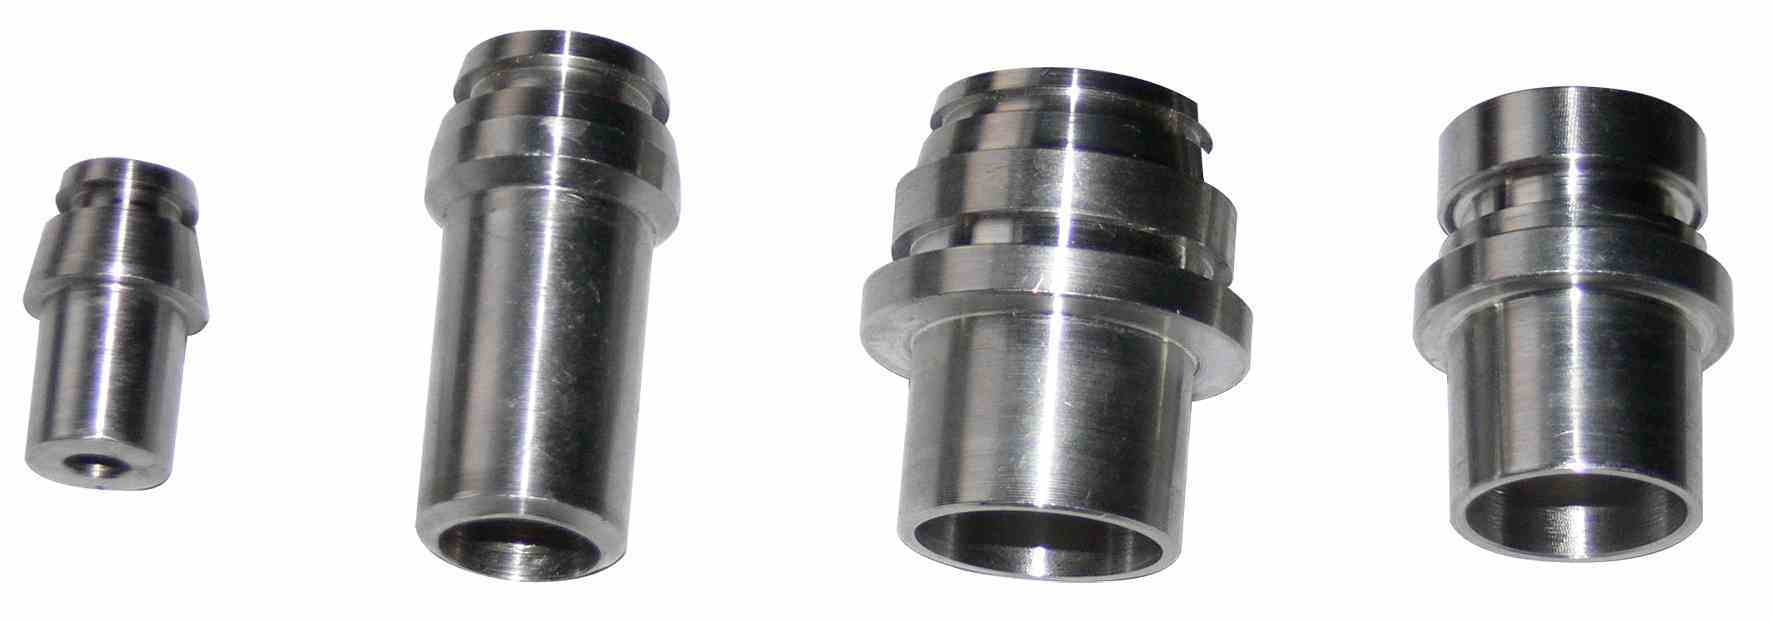 Pipe Connection /Stainless Steel Quick Connector / Custom Processing